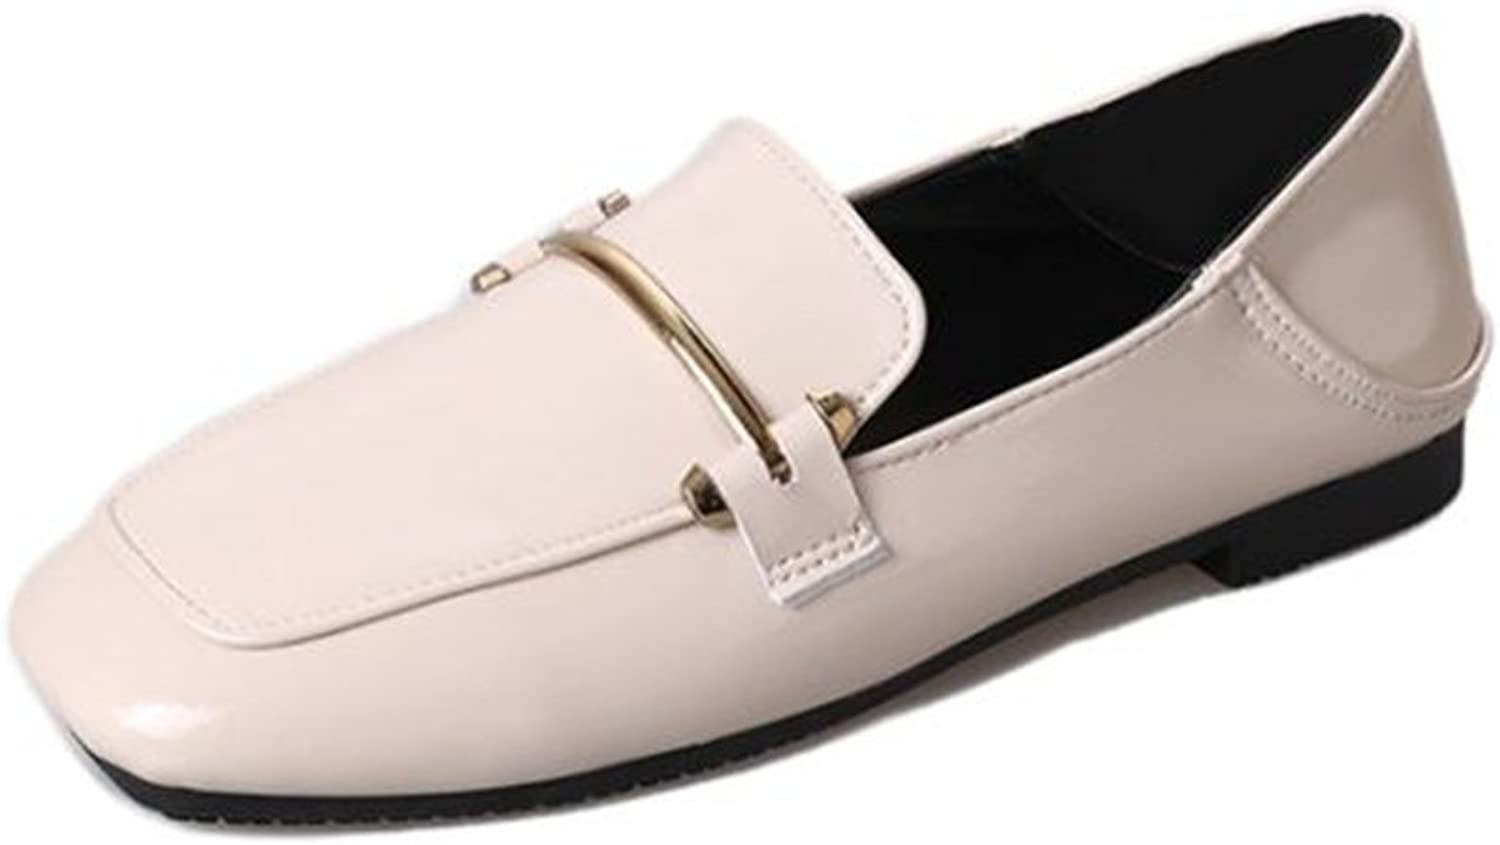 SUNNY Store Women's Wide Width Ballet Flat - Comfortable Slip On Pointed Toe Casual shoes